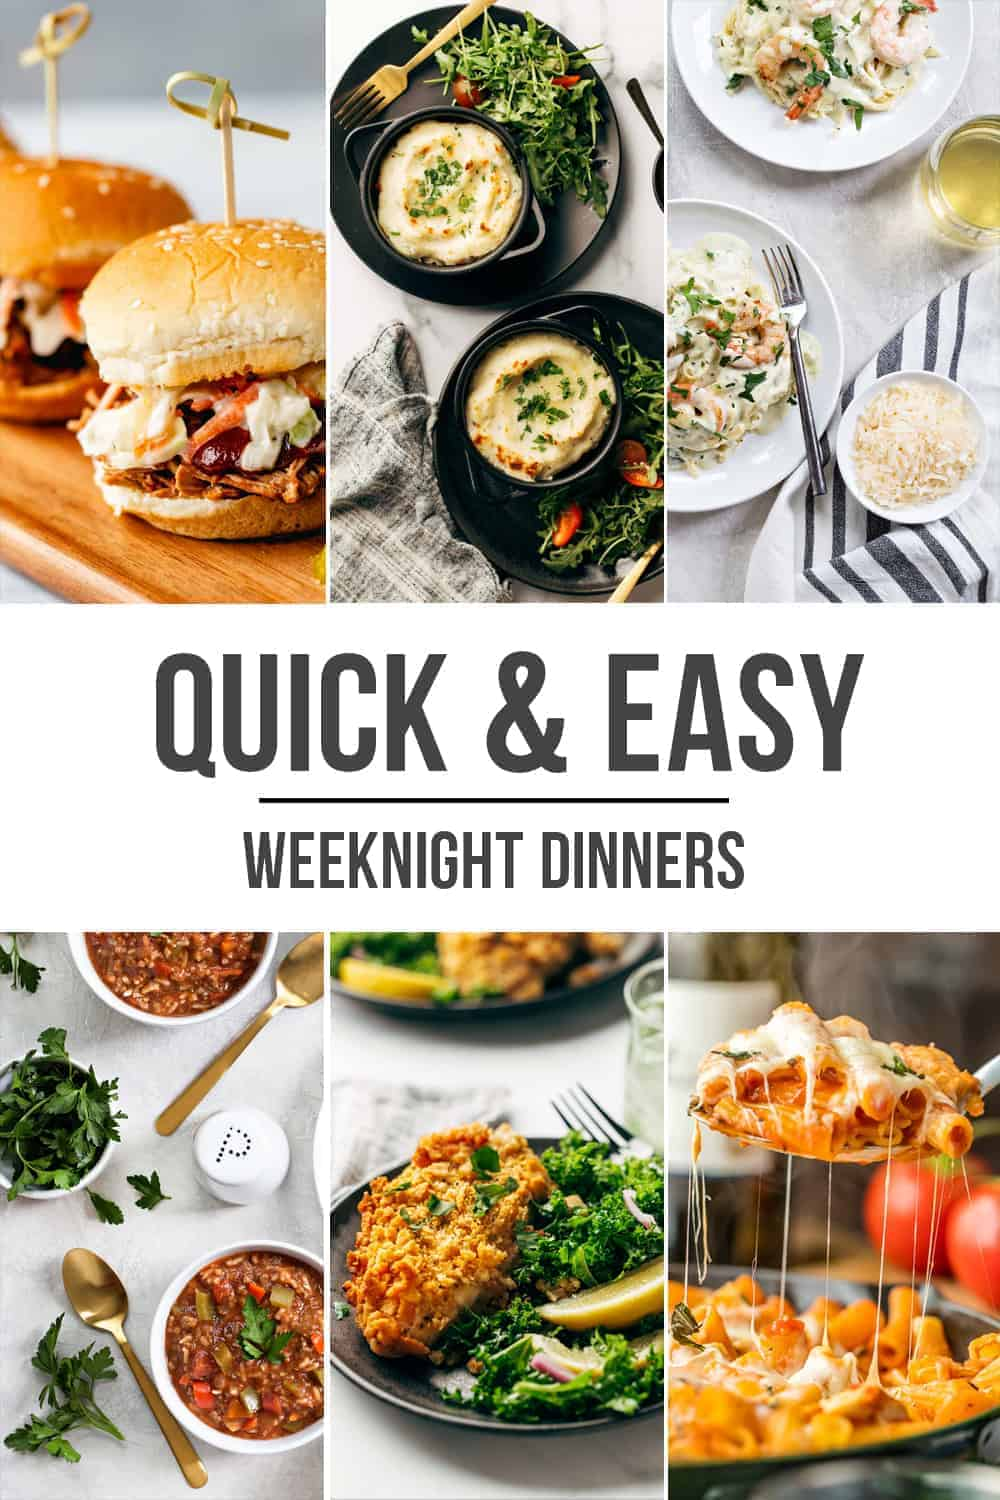 Change up your dinner routine with these 10 quick and easy weeknight dinners!